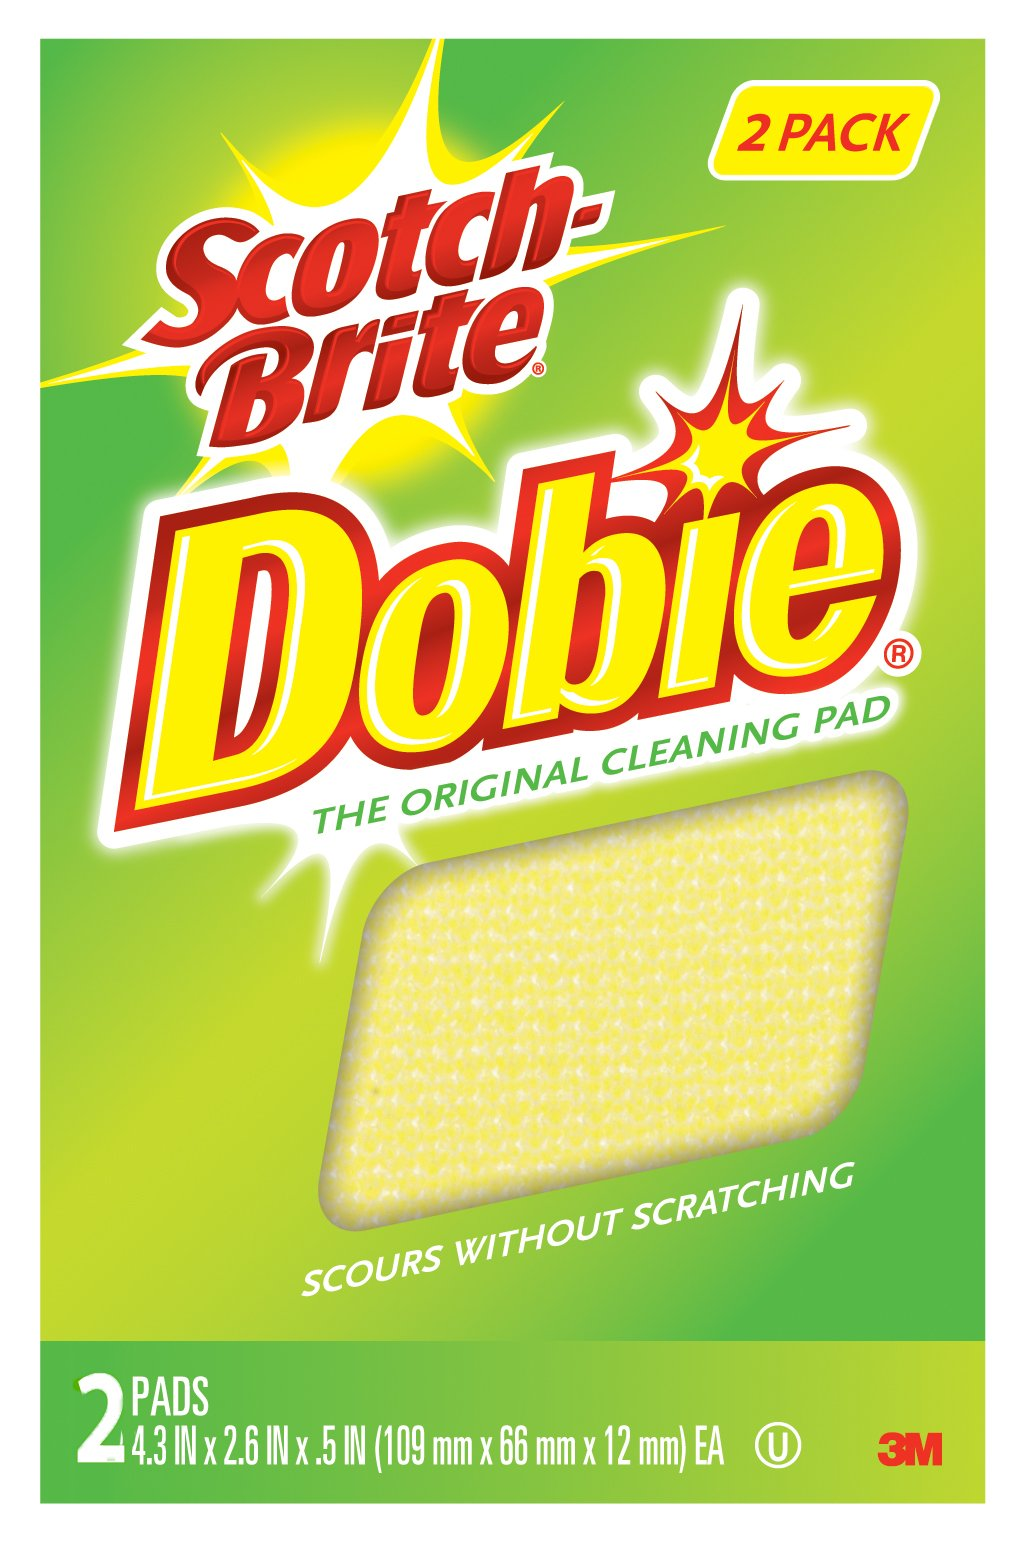 Scotch-Brite Dobie Pad